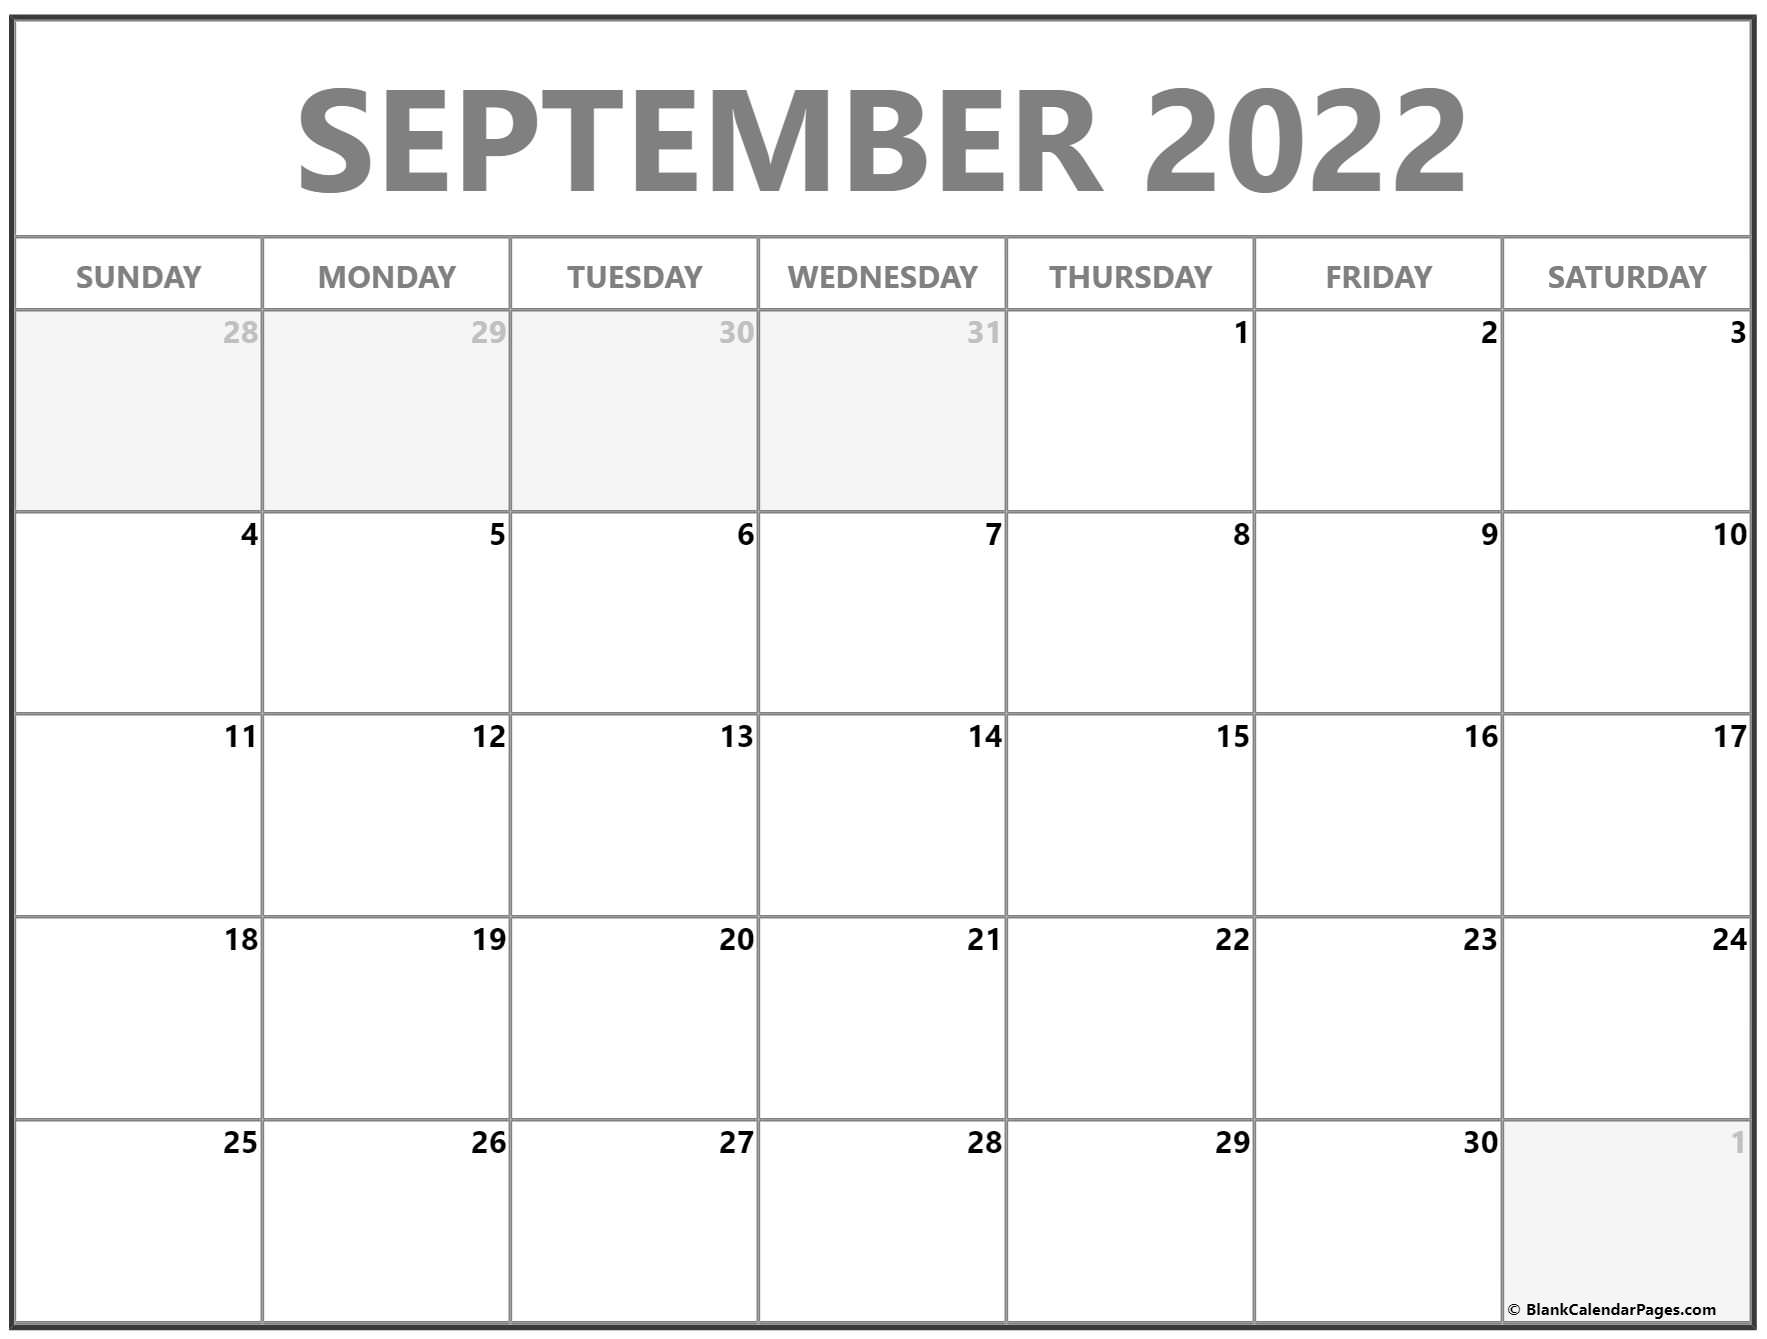 Downloads are subject to this site's term of use. September 2022 calendar | free printable calendar templates